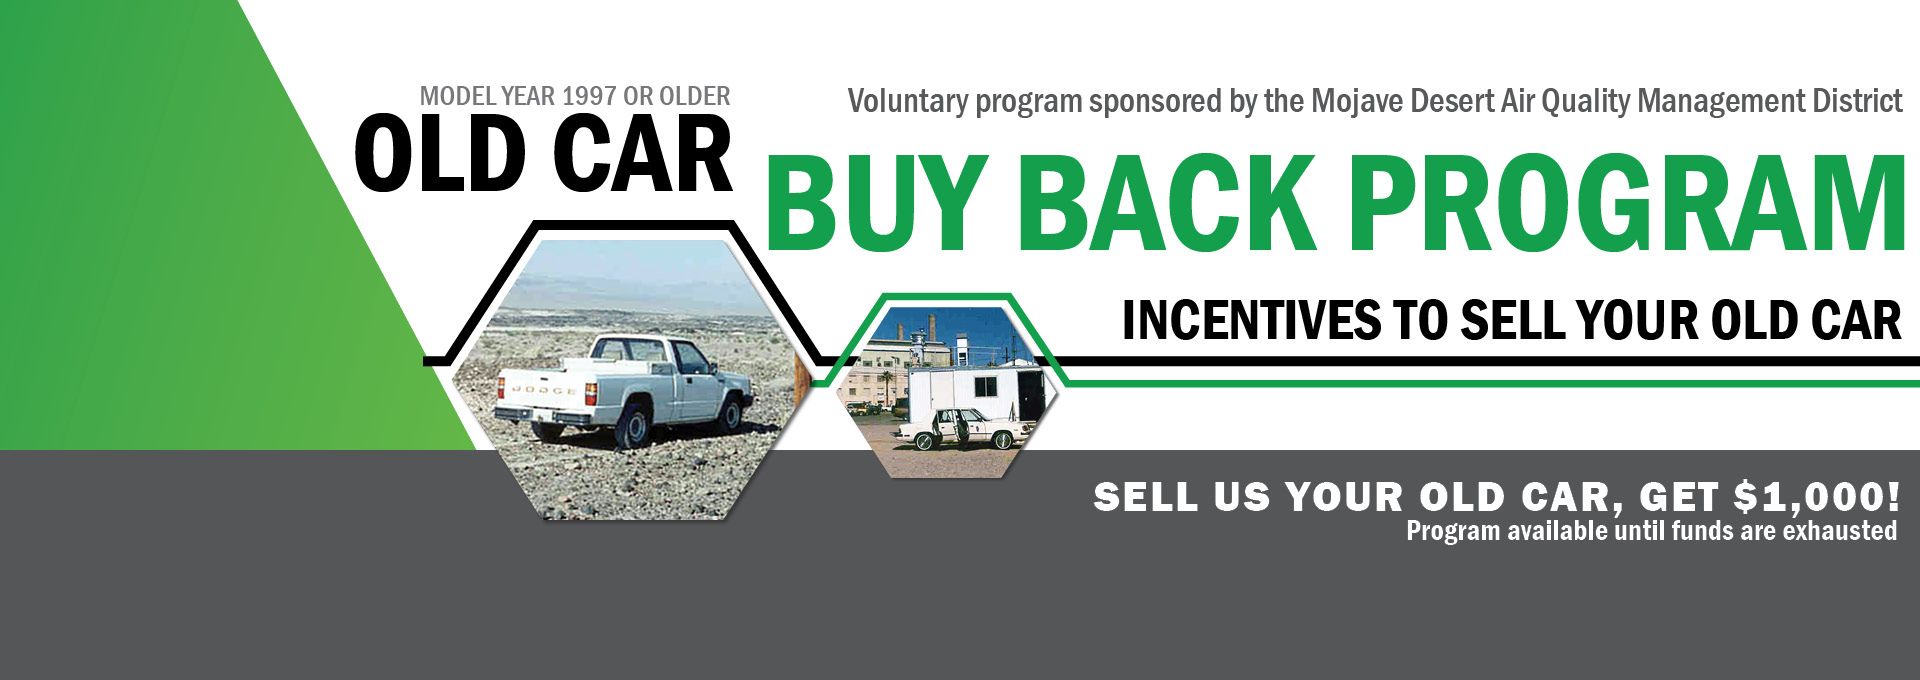 2018 Old Car Buy Back Banner - COLLAGE